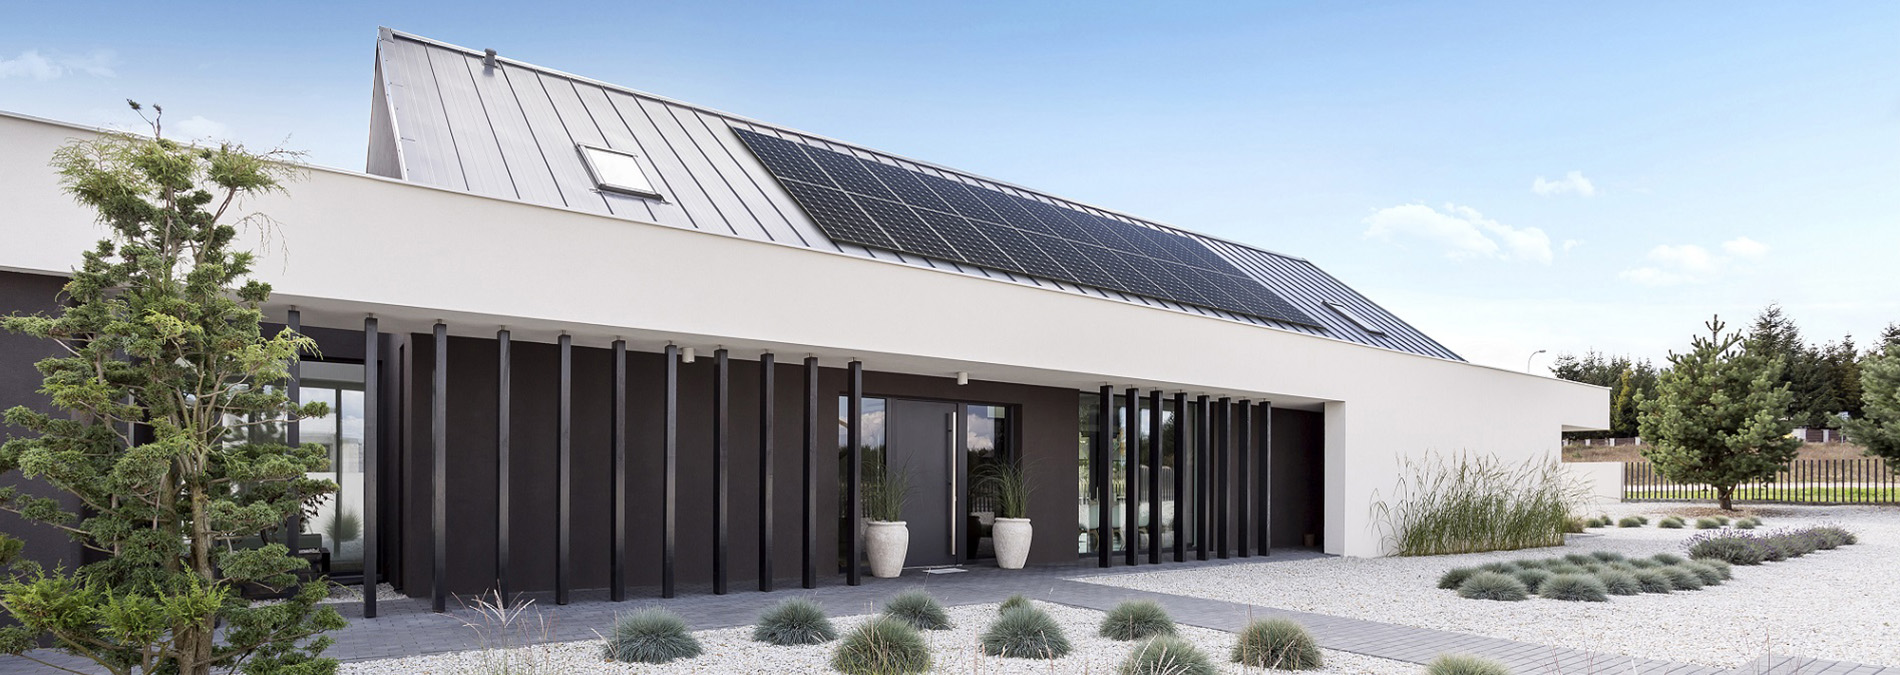 Sunpower Launches Industry S First 400 Plus Watt Home